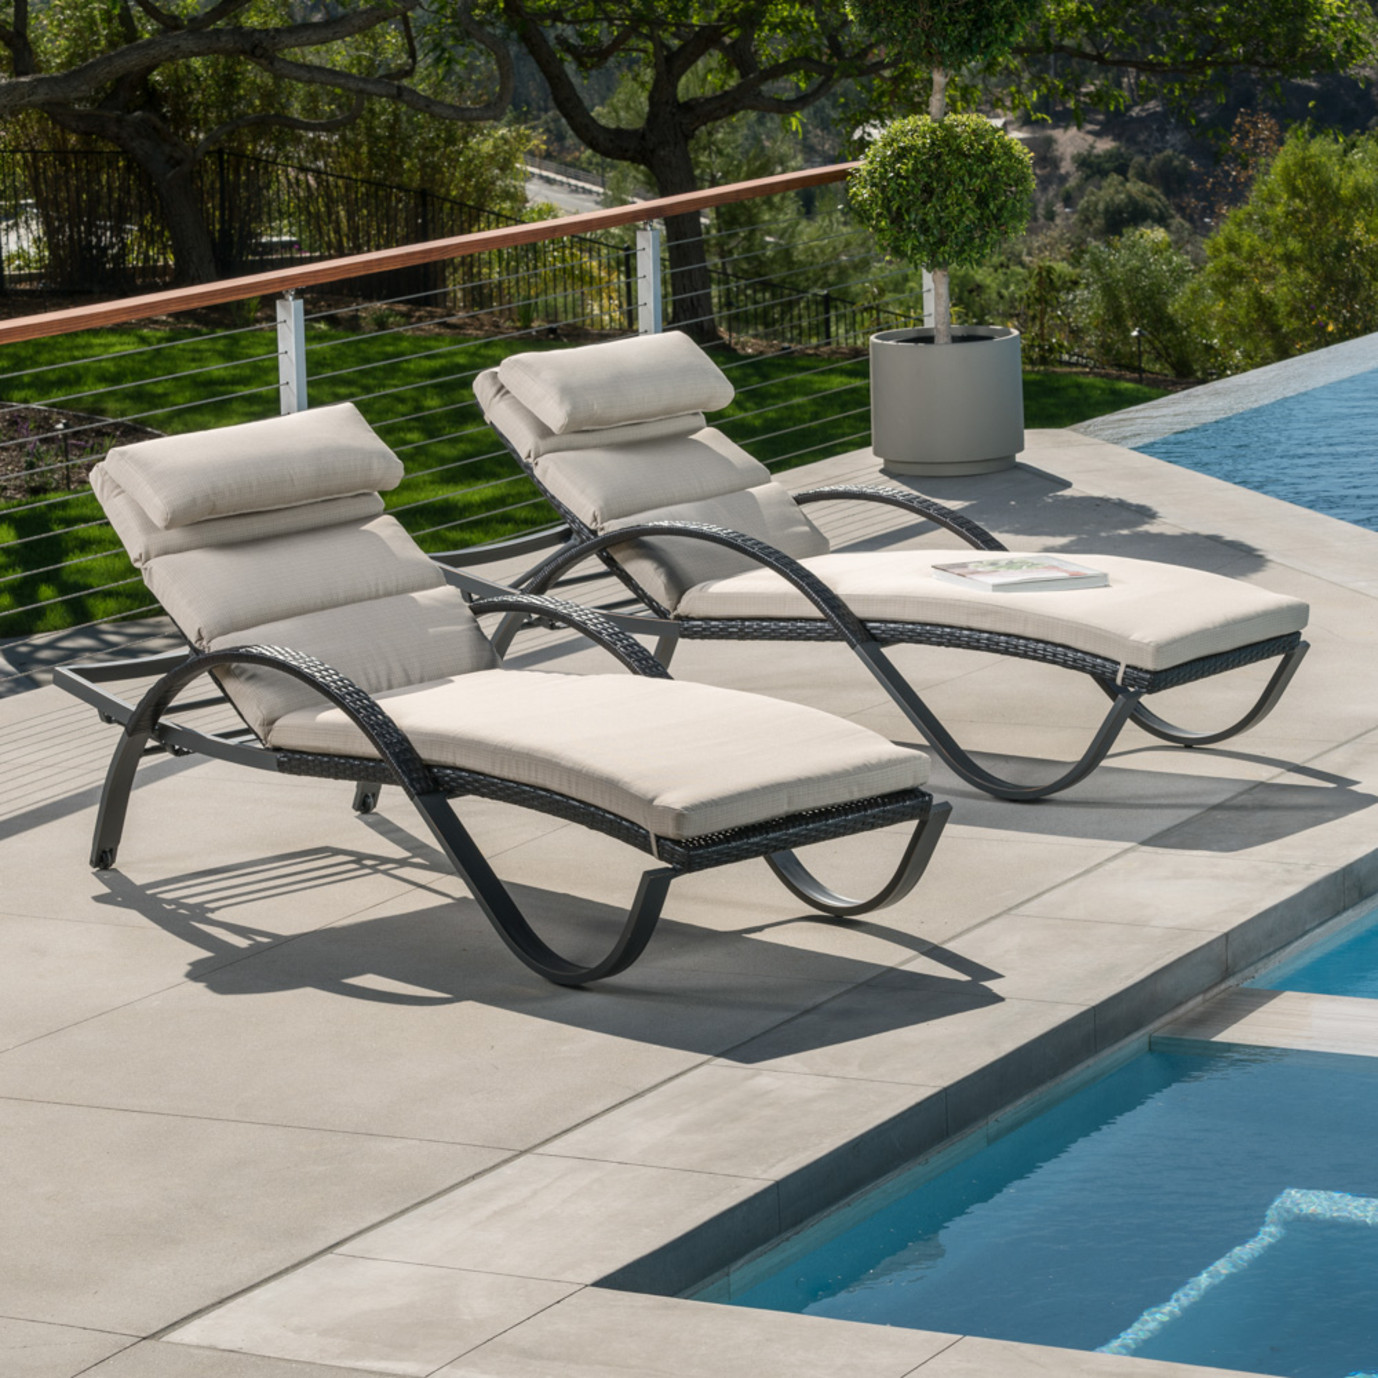 Deco Chaise Lounges With Cushions Slate Grey Rst Brands